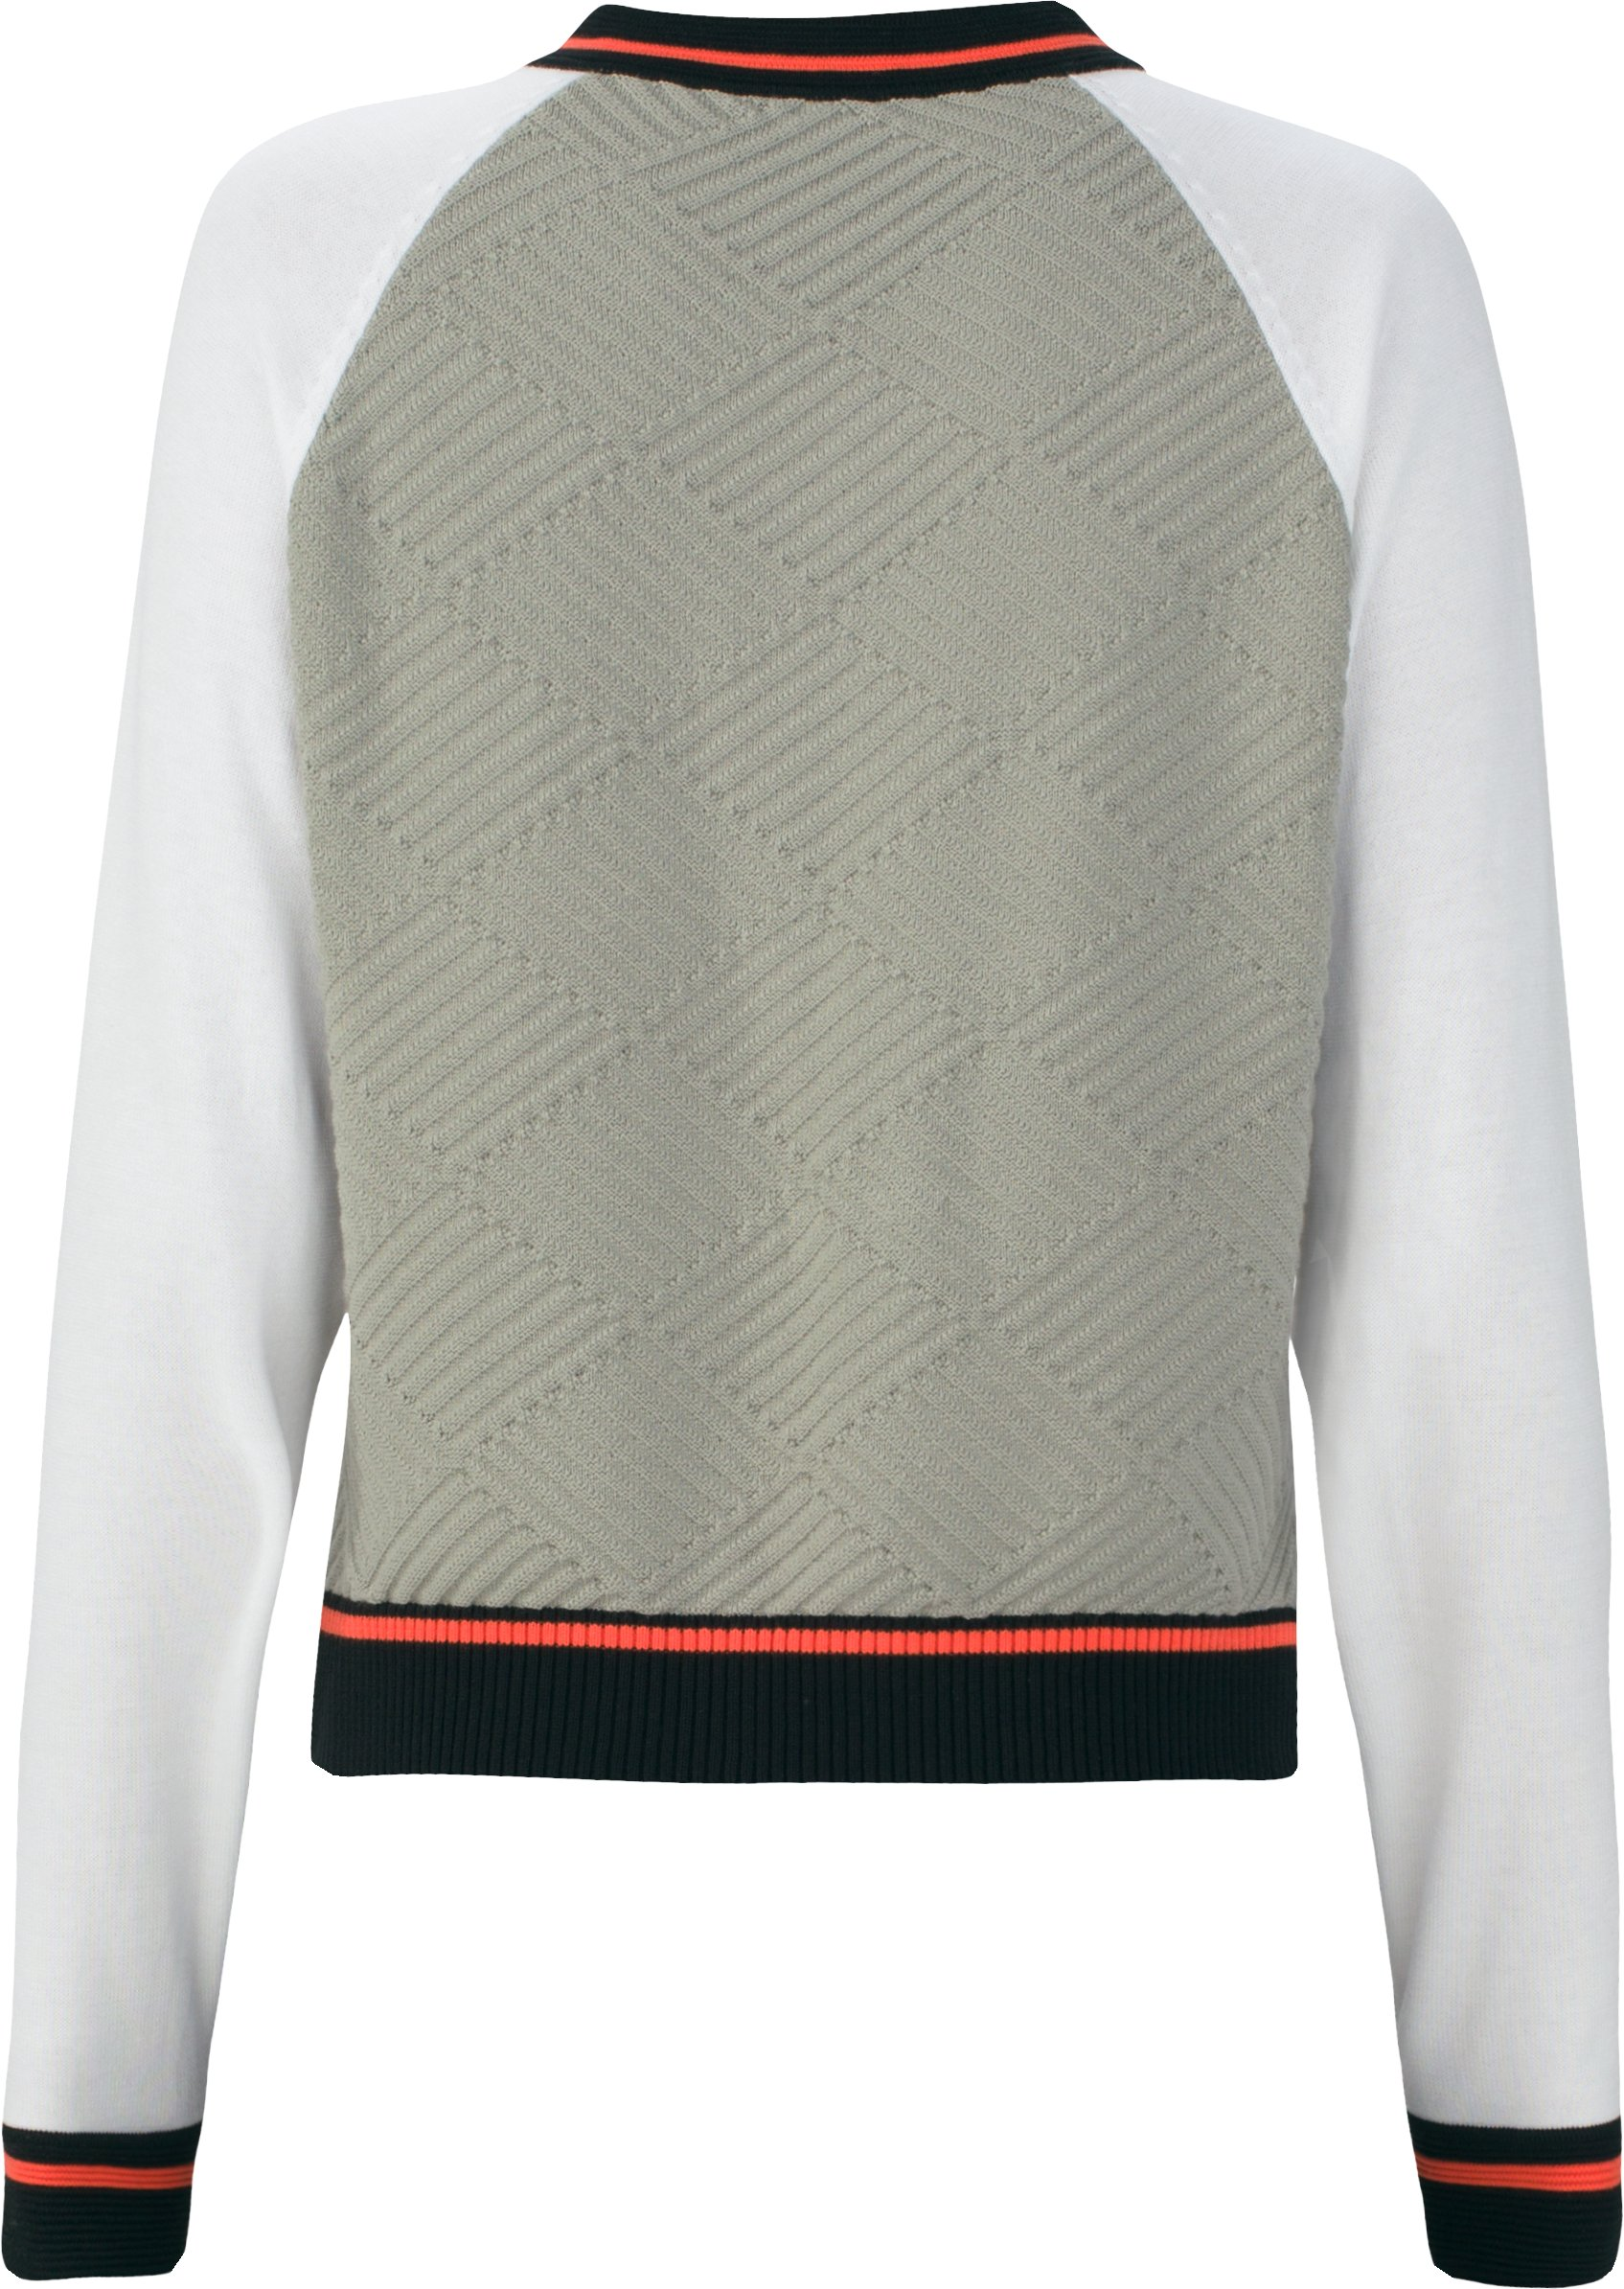 Women's UAS Fieldhouse V-Neck Knit Sweater, Gray